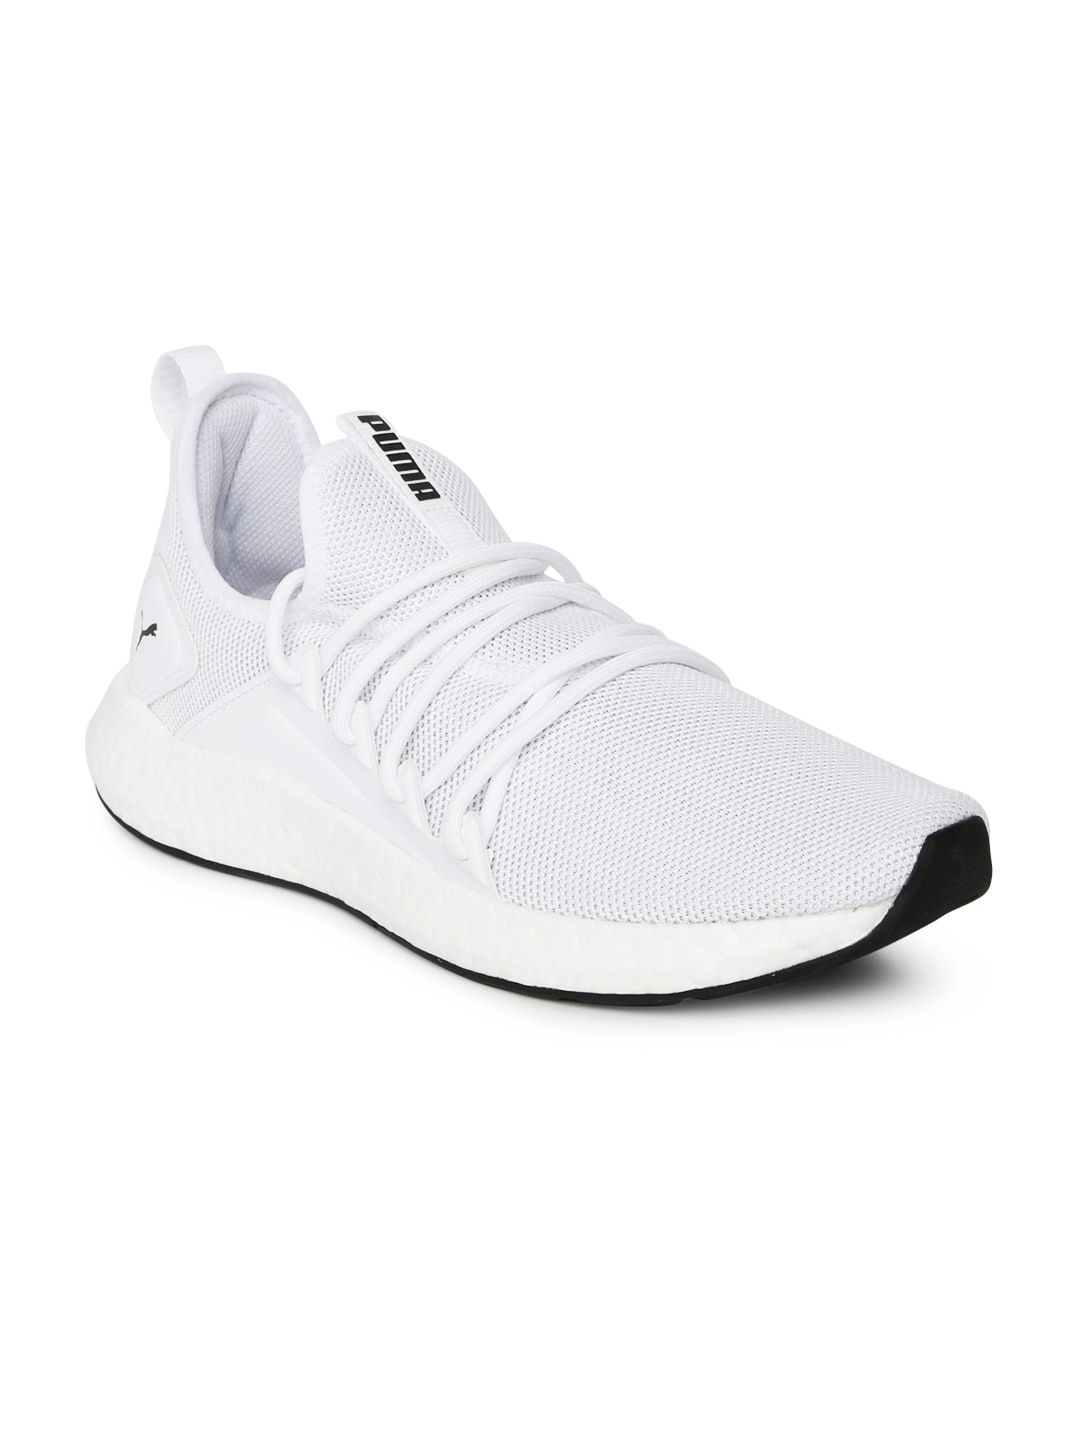 White Shoes - Buy White Shoes Online in India 9b0718df4